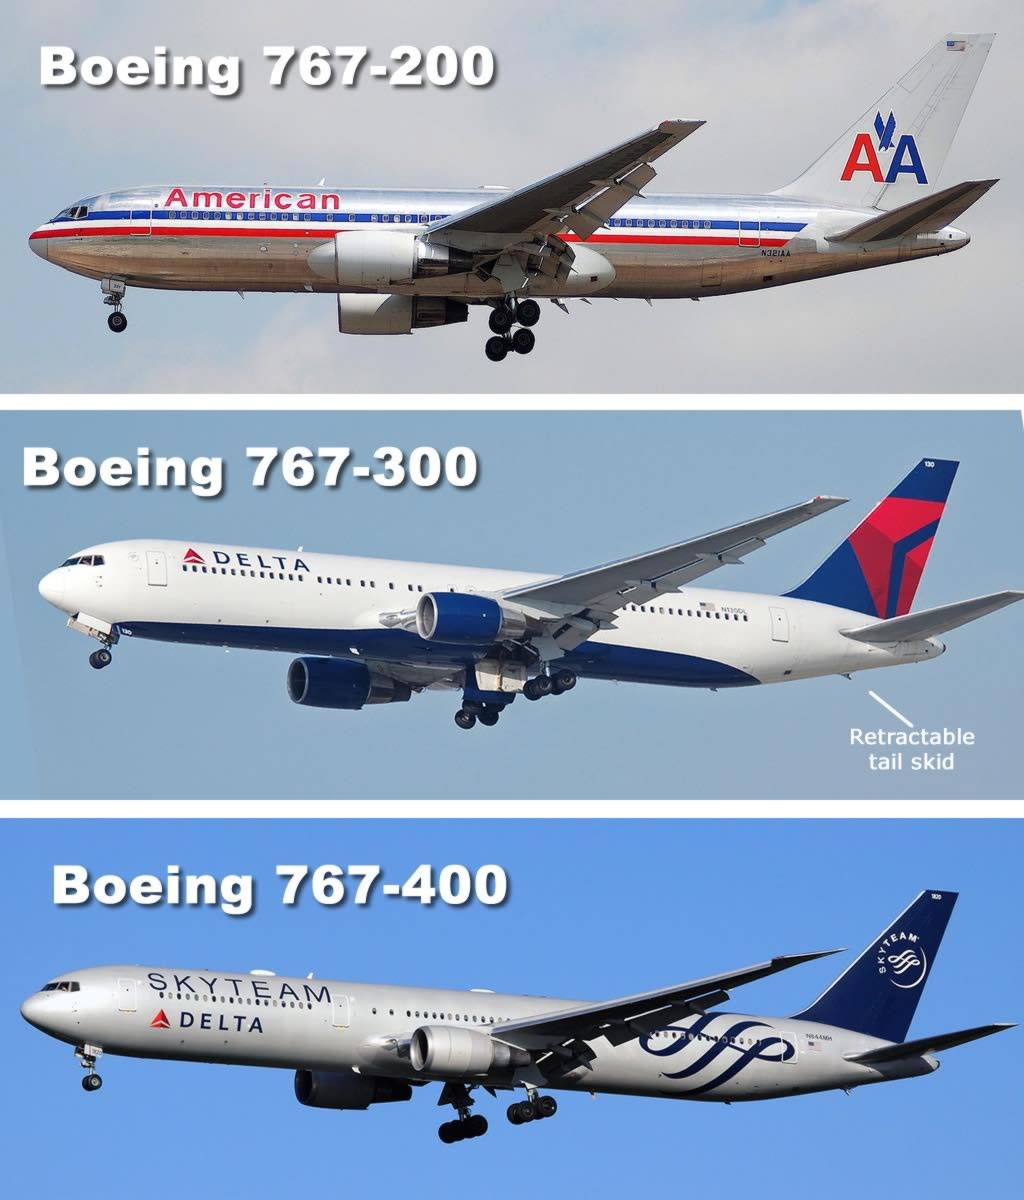 Spotting tips for the Boeing 767-200 (top) and 767-300 (bottom)